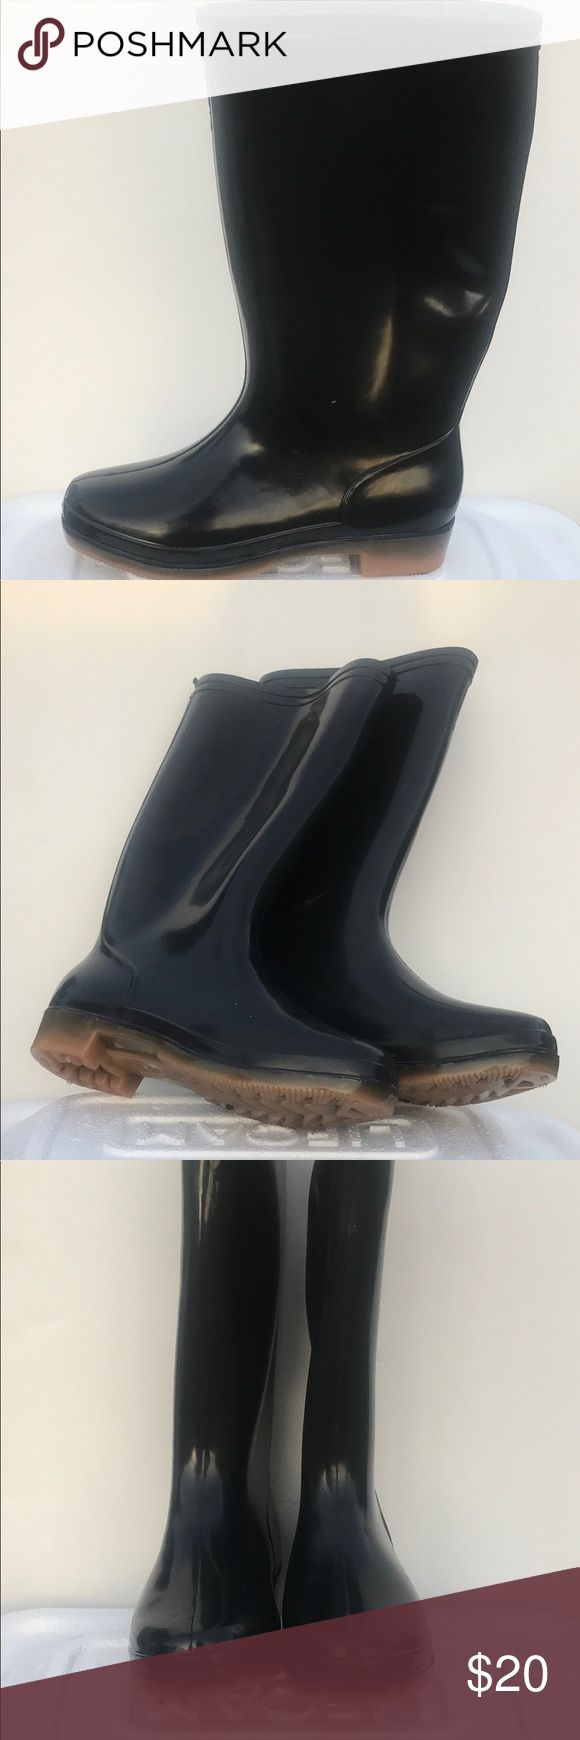 Rubber rain boots Simple rubber rain boots brown soles 13in tall from heel to top Shoes Winter & Rain Boots